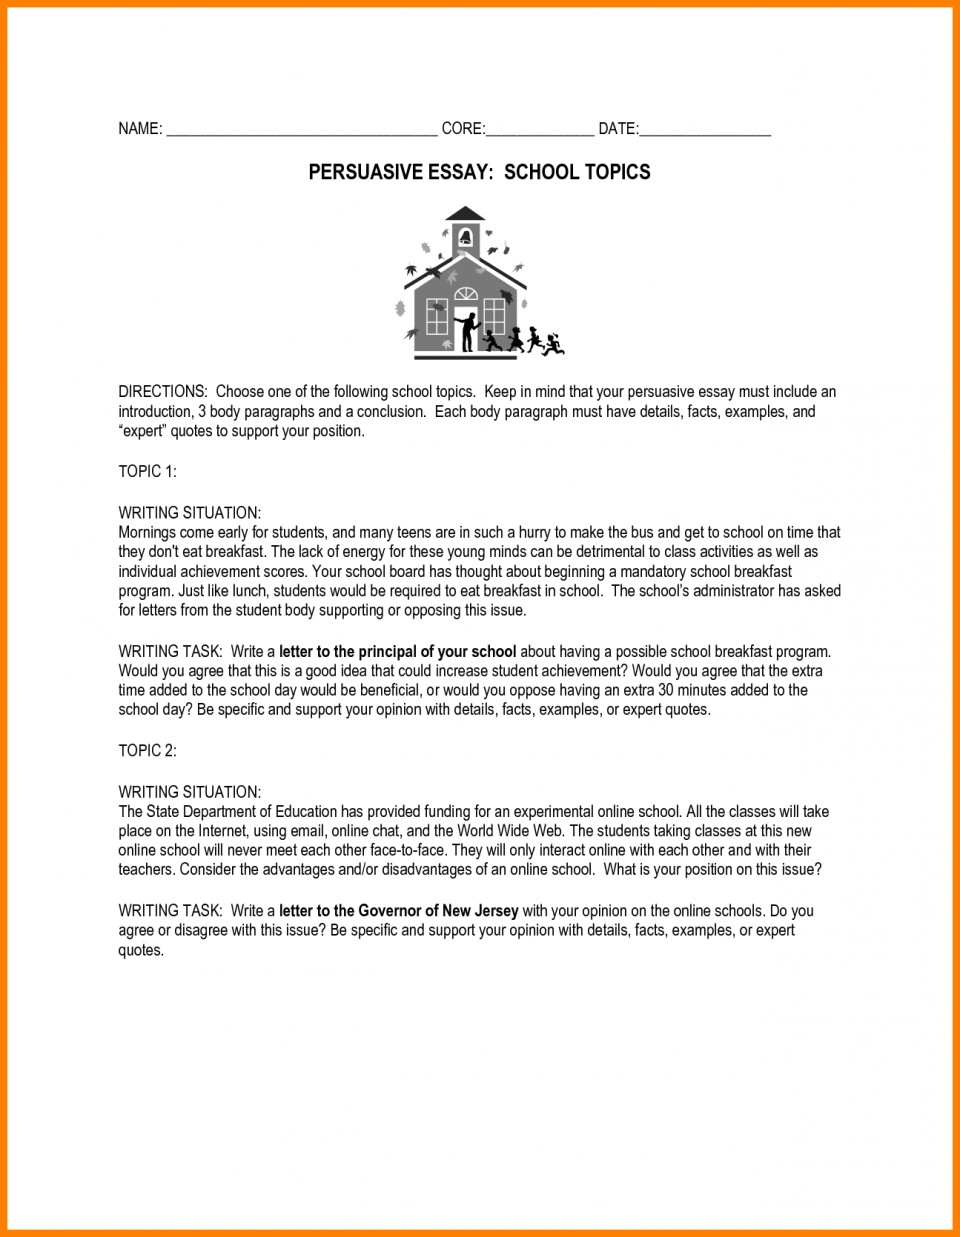 014 Essay Example Essays For Middle School Awesome Collection Of Persuasive Topics High Fabulous Prompts Shocking Informative Writing Leadership Students 960